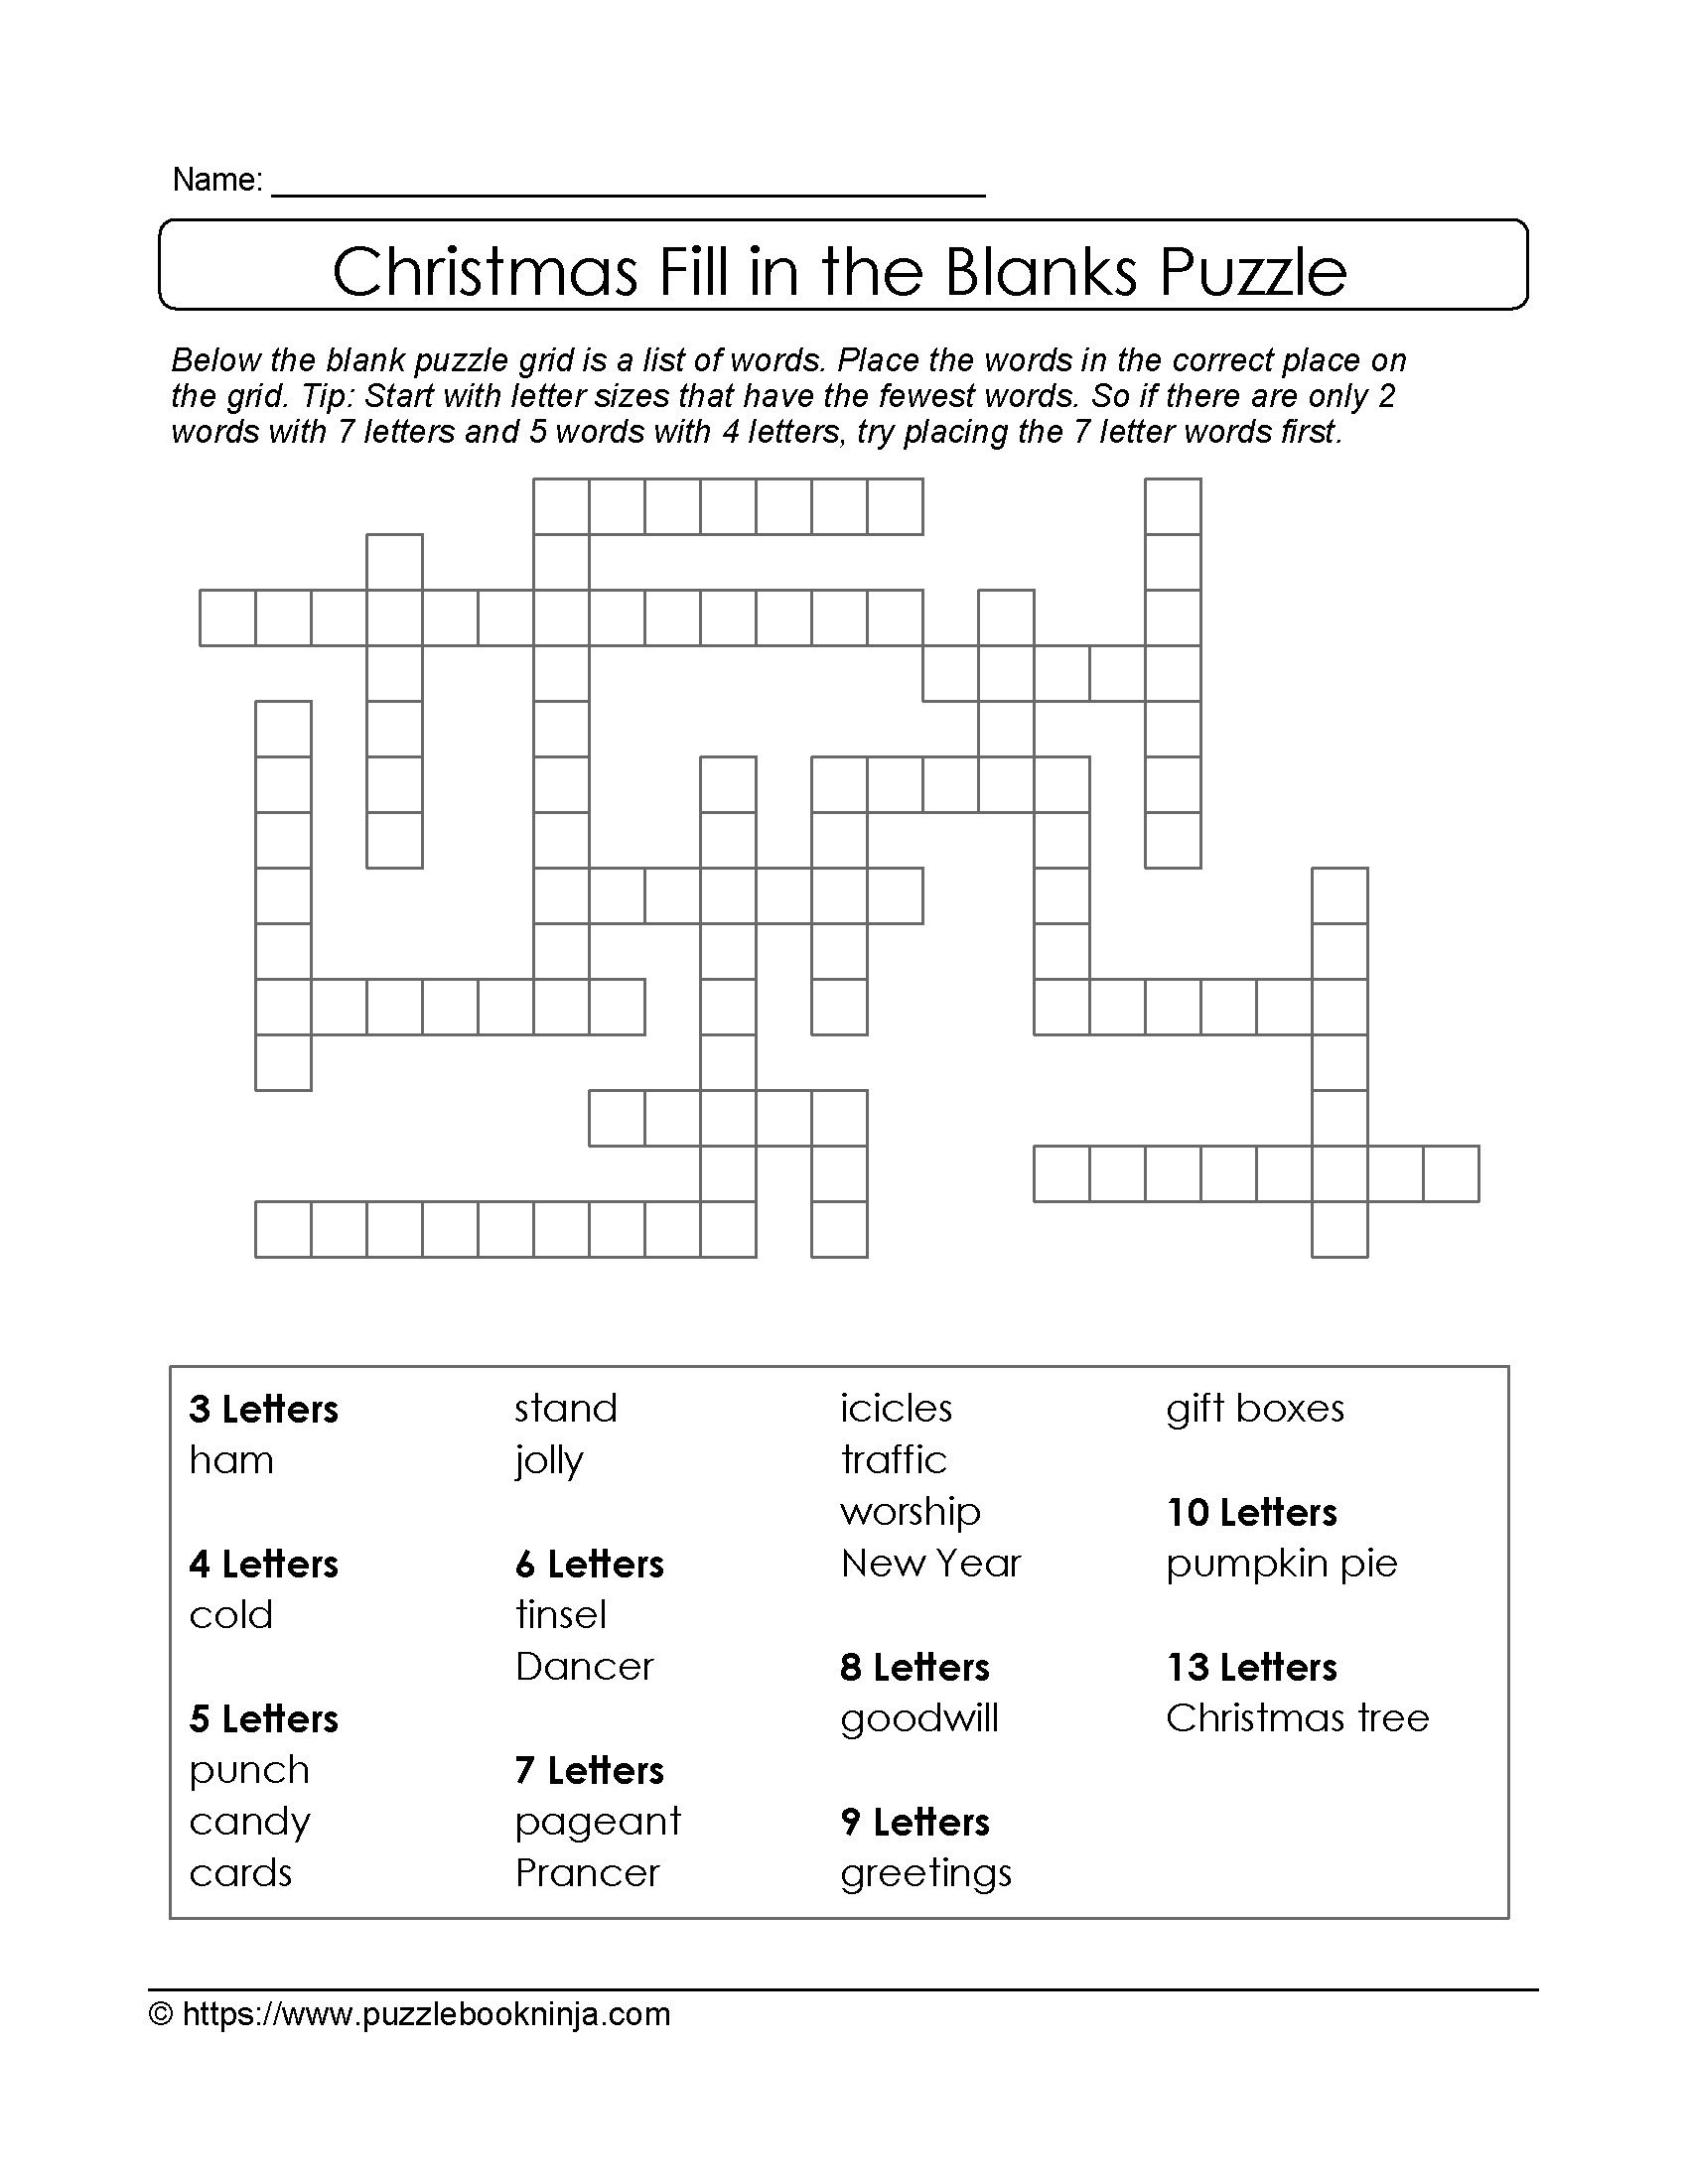 Freebie Xmas Puzzle To Print Fill In The Blanks Crossword Like